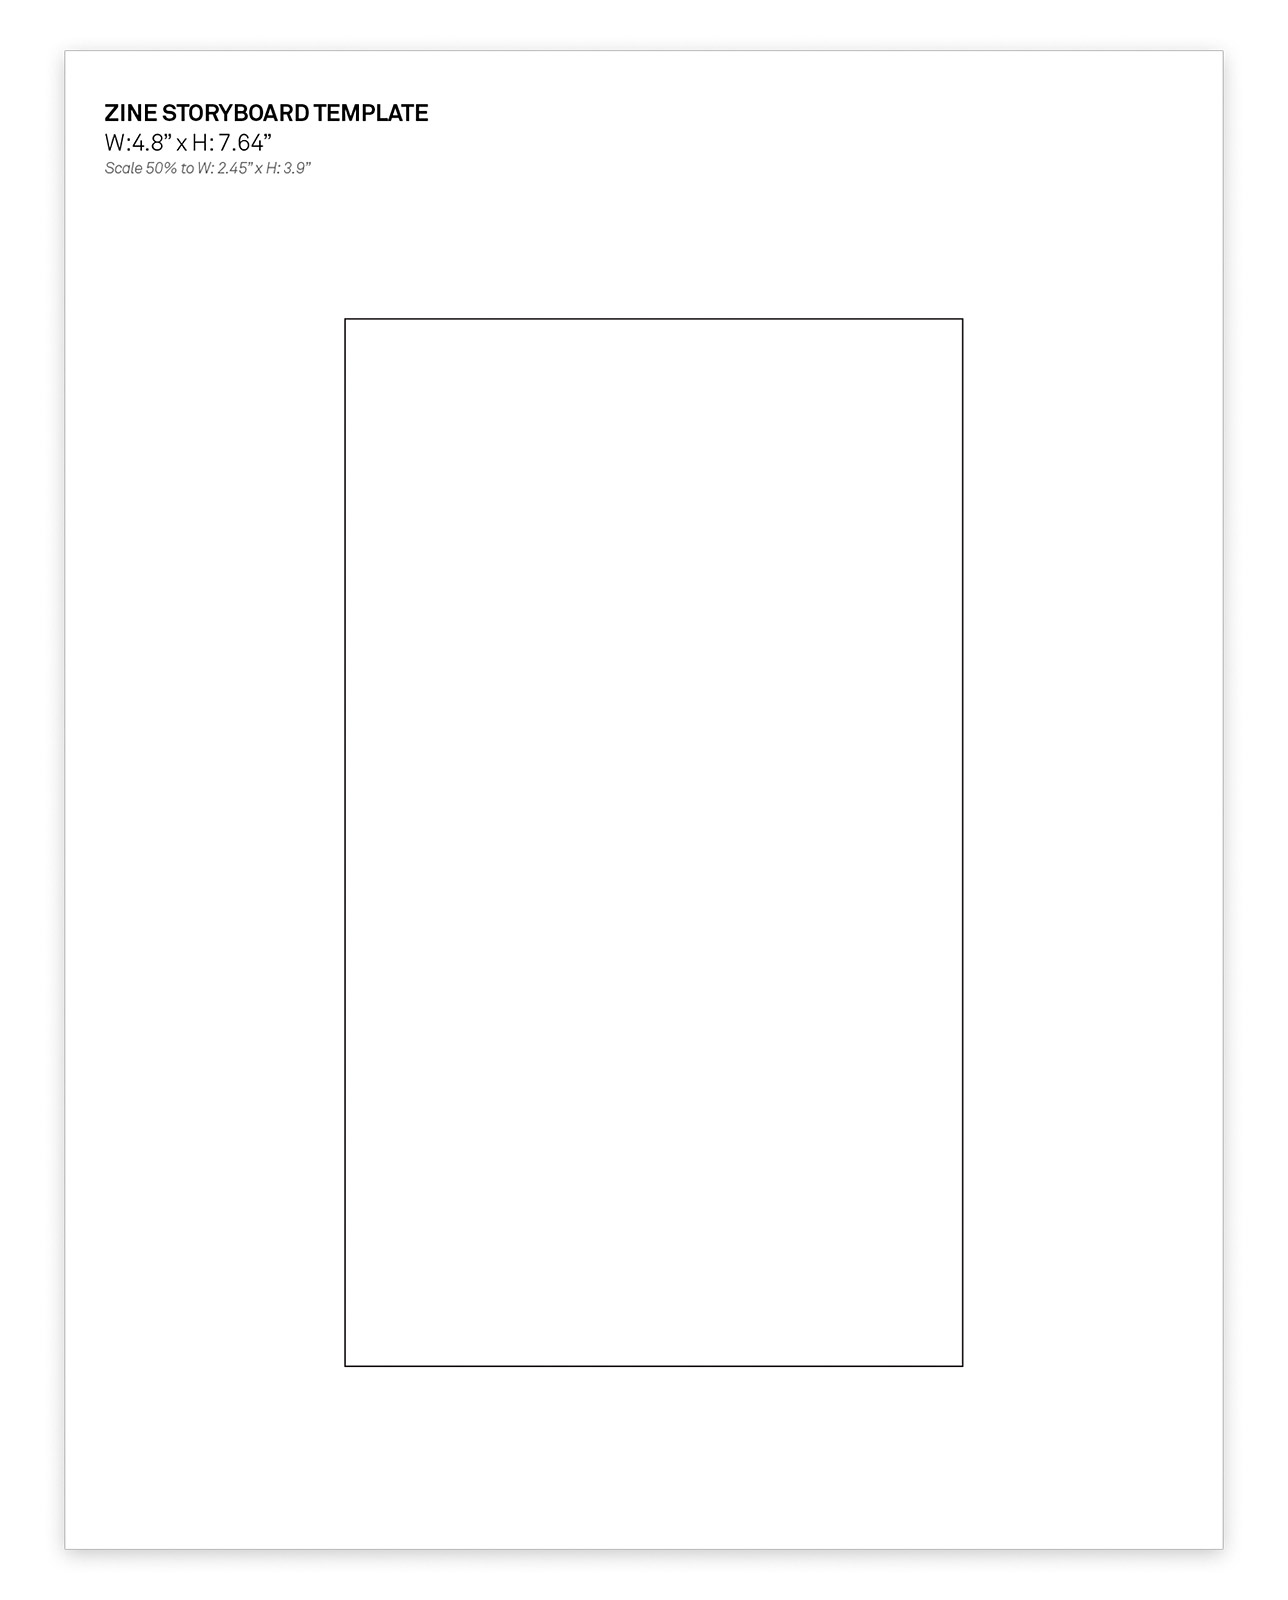 Zine Template + Layout Document @ Umami Design Studio